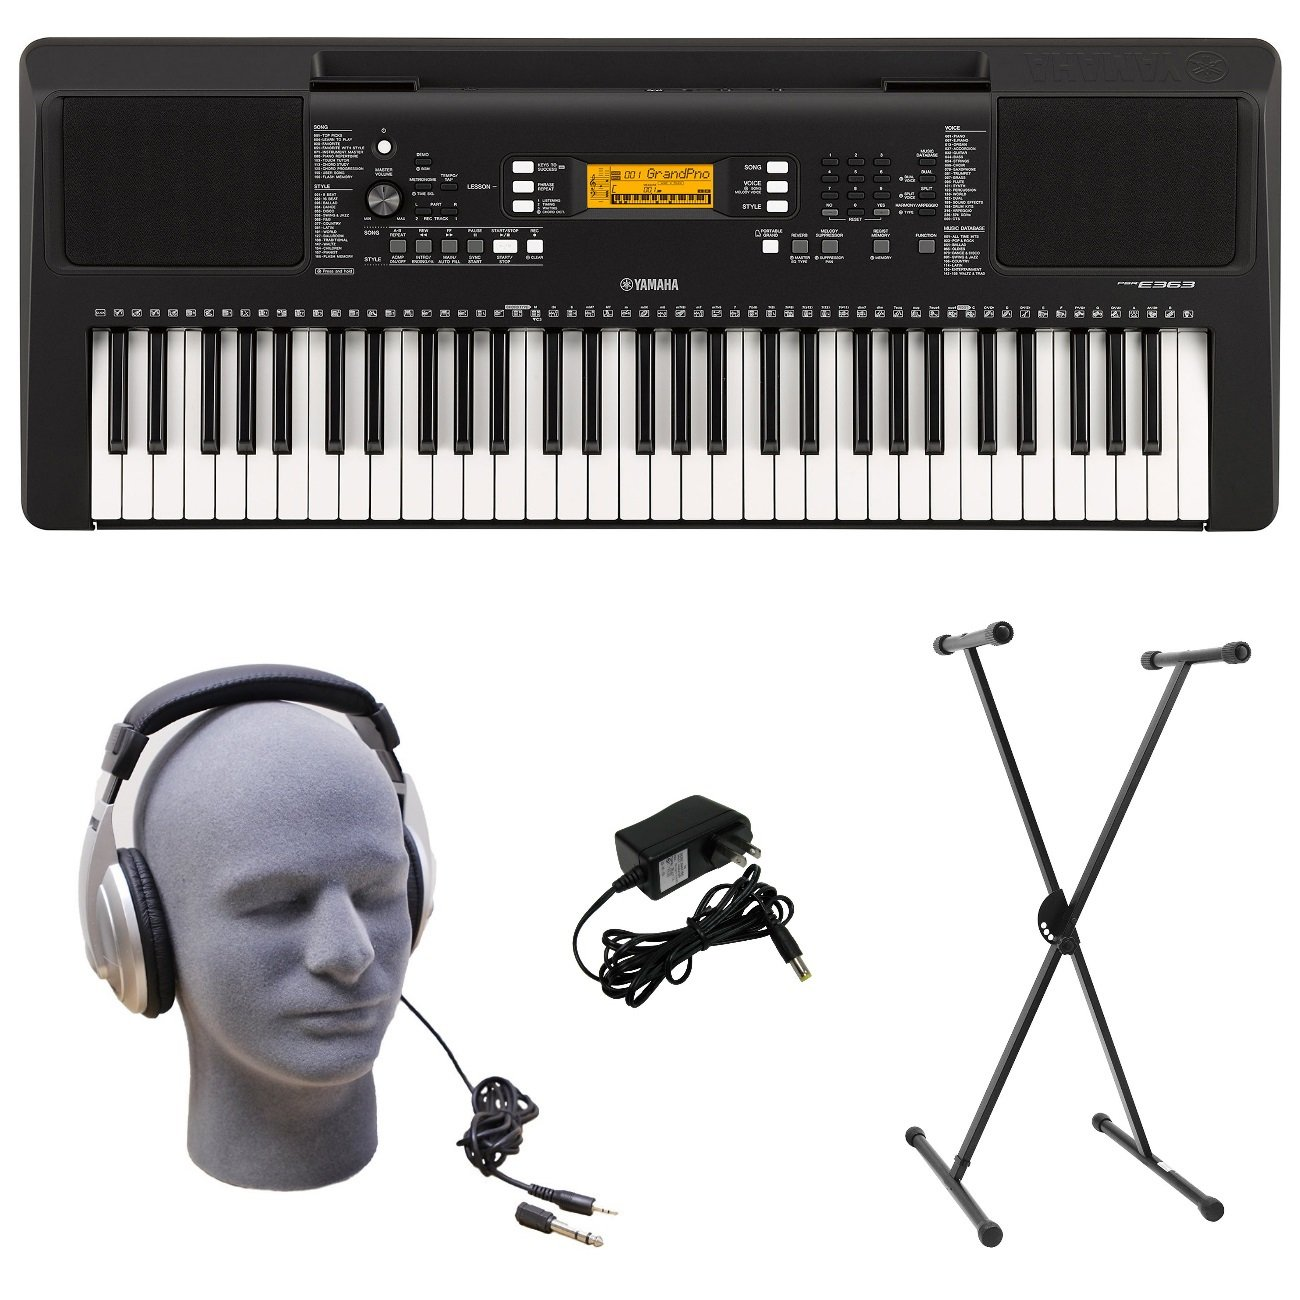 Yamaha Psr E363 Pks 61 Key Premium Keyboard Pack With Fc5 Pedal Wiring Diagram Stand Headphones Power Supply Musical Instruments